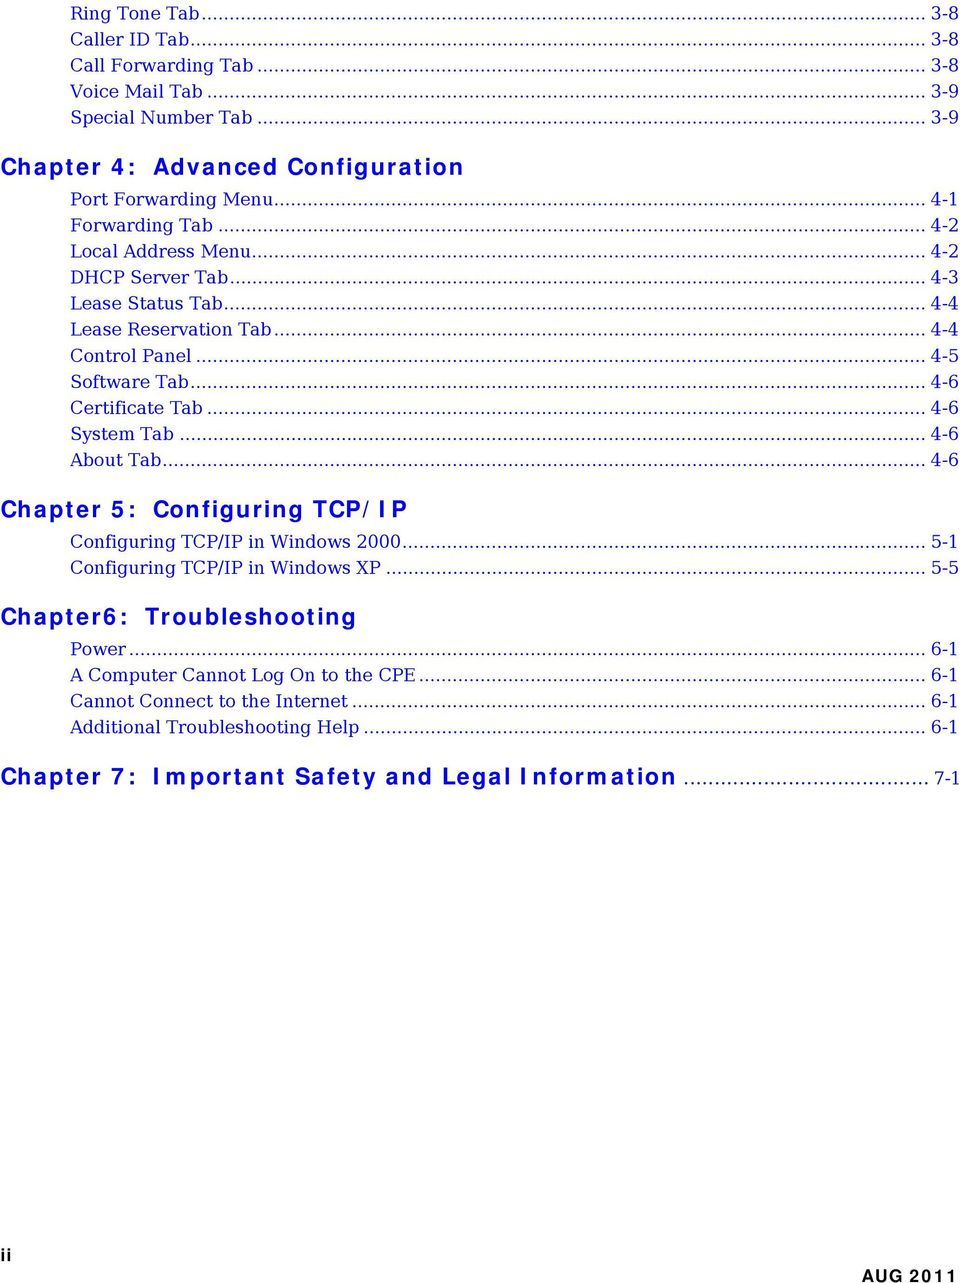 .. 4-6 Certificate Tab... 4-6 System Tab... 4-6 About Tab... 4-6 Chapter 5: Configuring TCP/IP Configuring TCP/IP in Windows 2000... 5-1 Configuring TCP/IP in Windows XP.